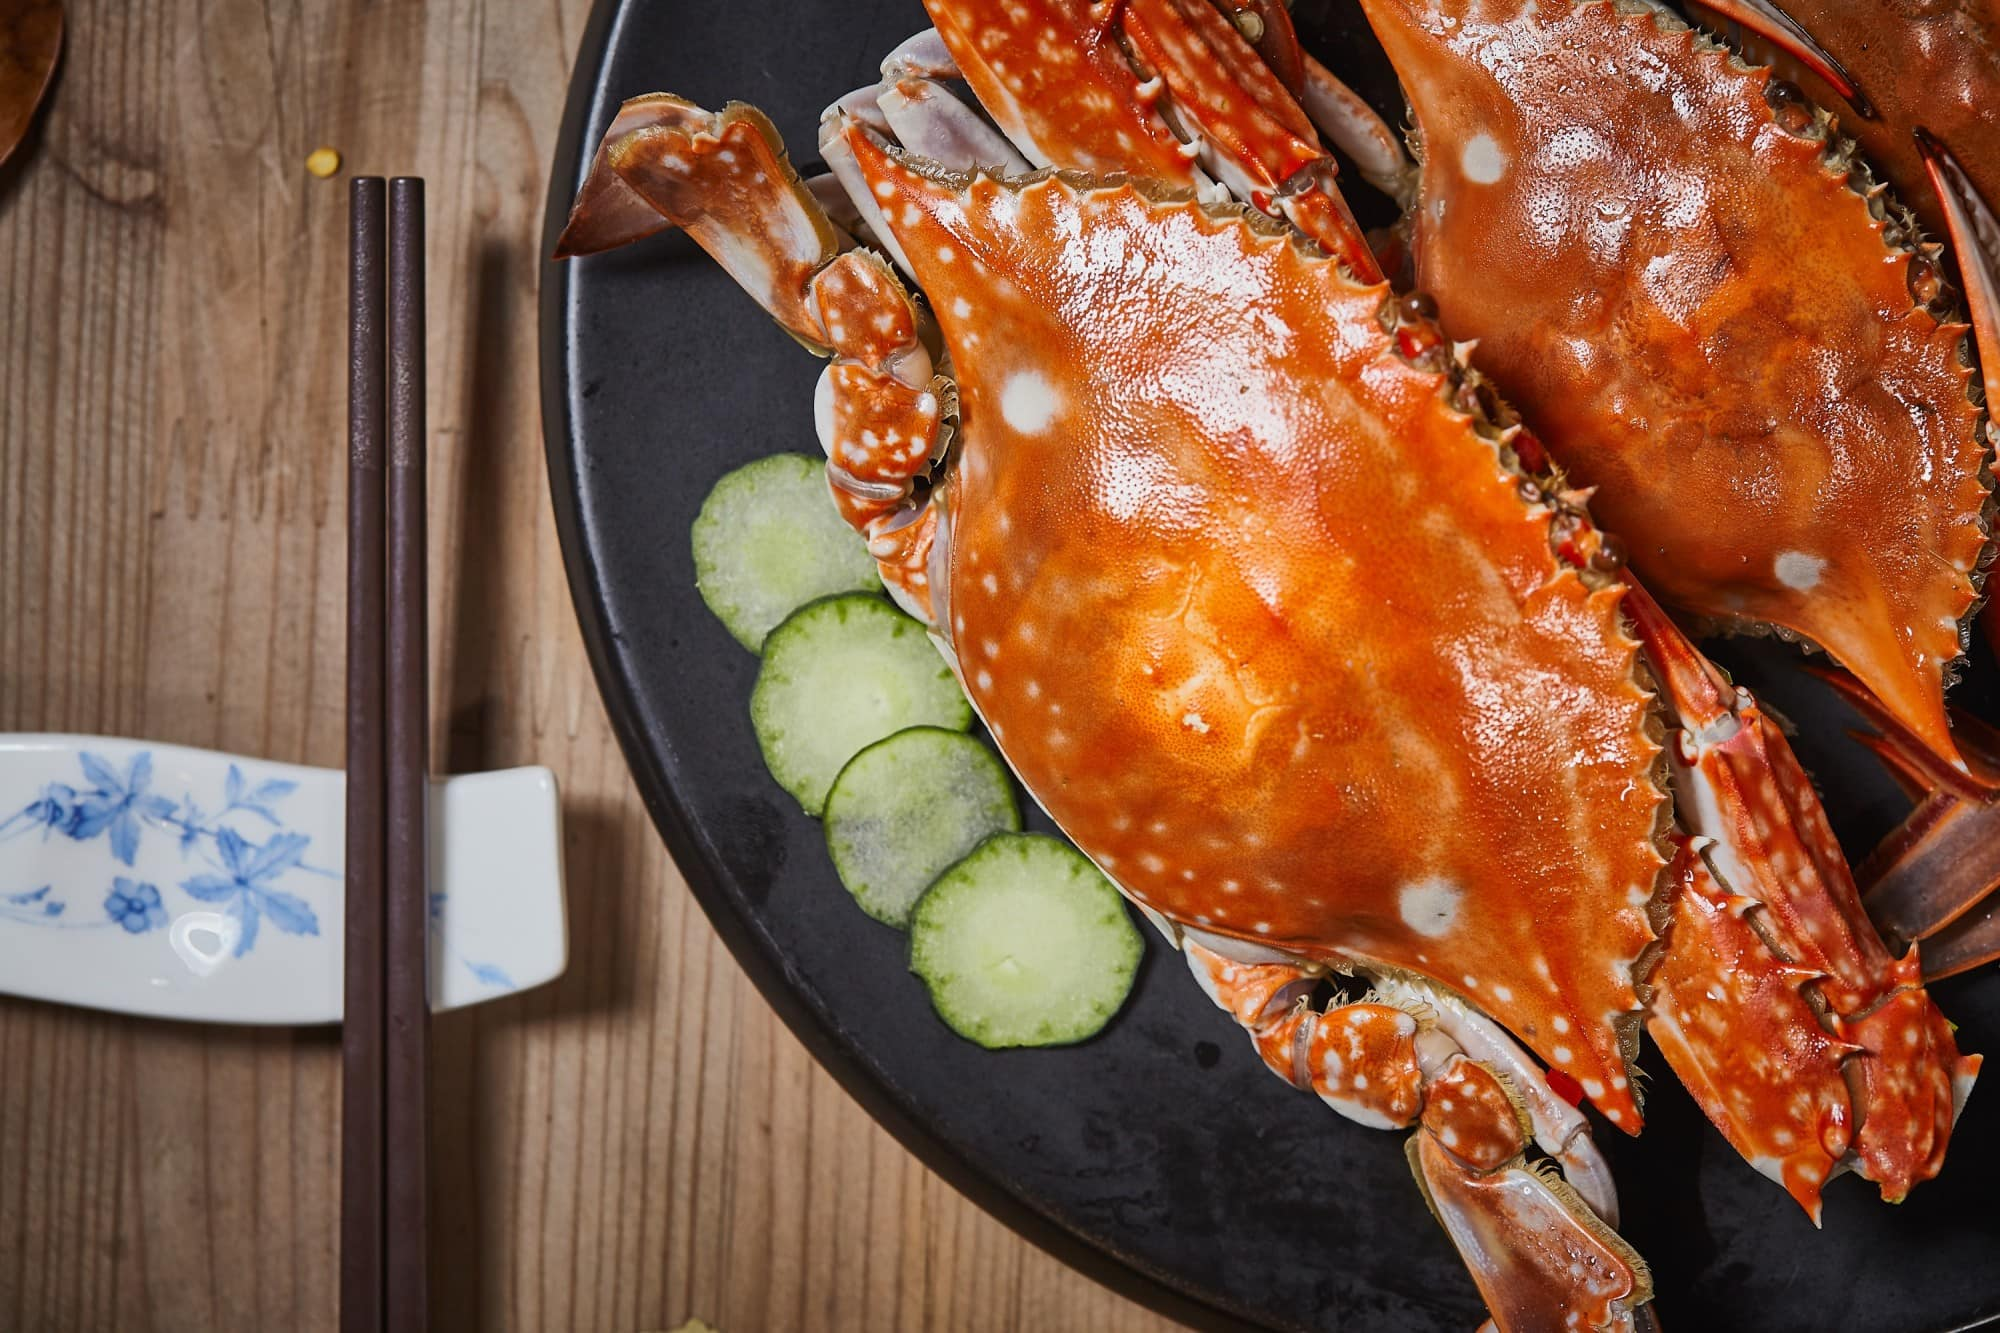 Delicious Sides to Serve with Crab Dishes